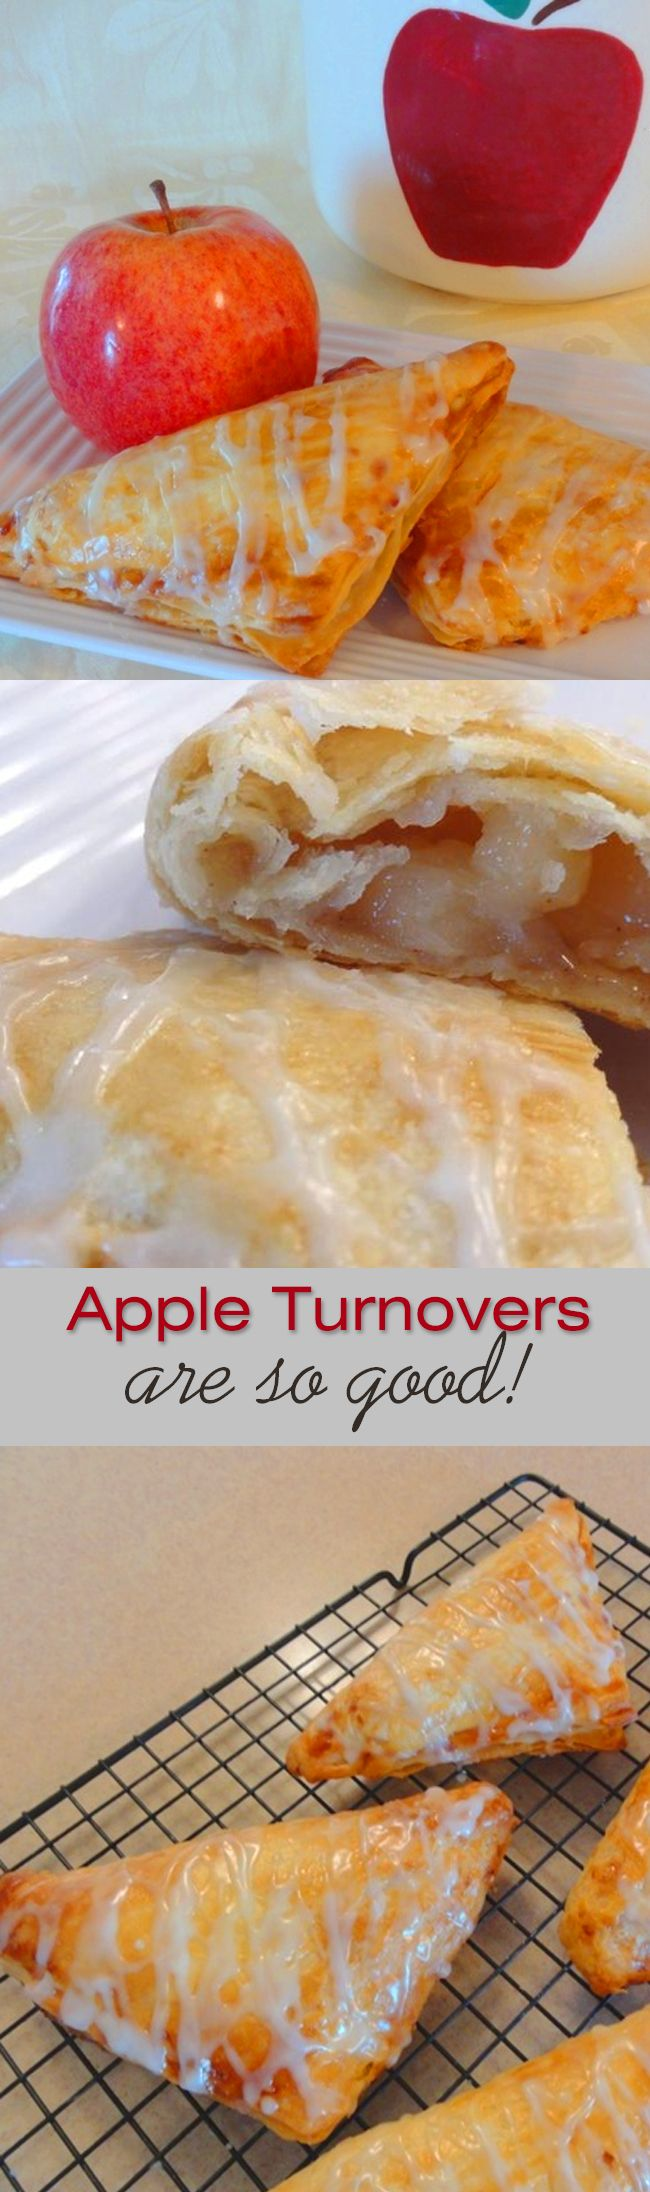 This homemade buttery pastry is delicious, light, flakey, tender, and it puffs up beautifully when baked. No wonder Apple Turnovers are so good!